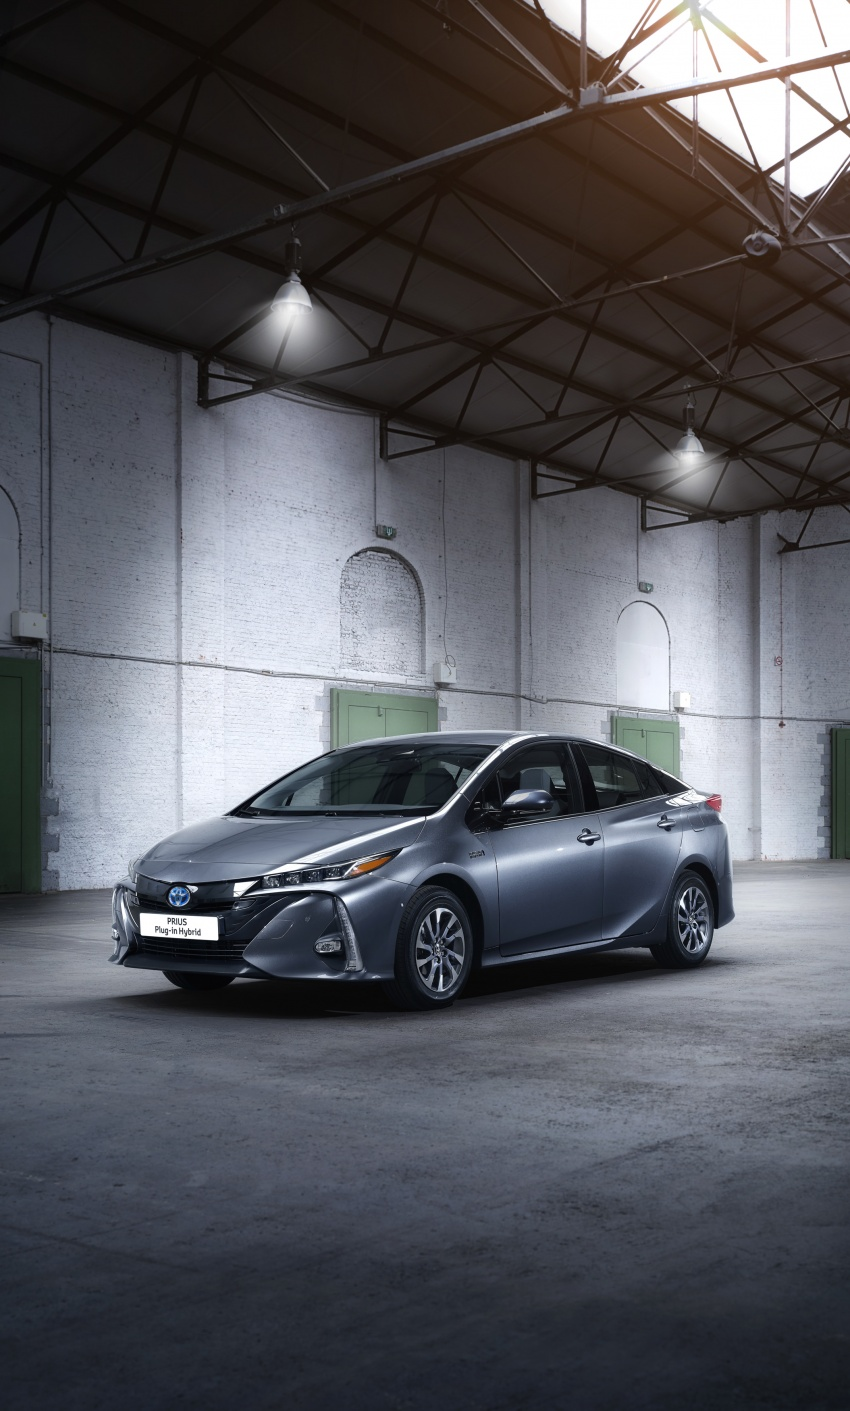 New Toyota Prius Plug-in Hybrid – double the EV range Image #612843